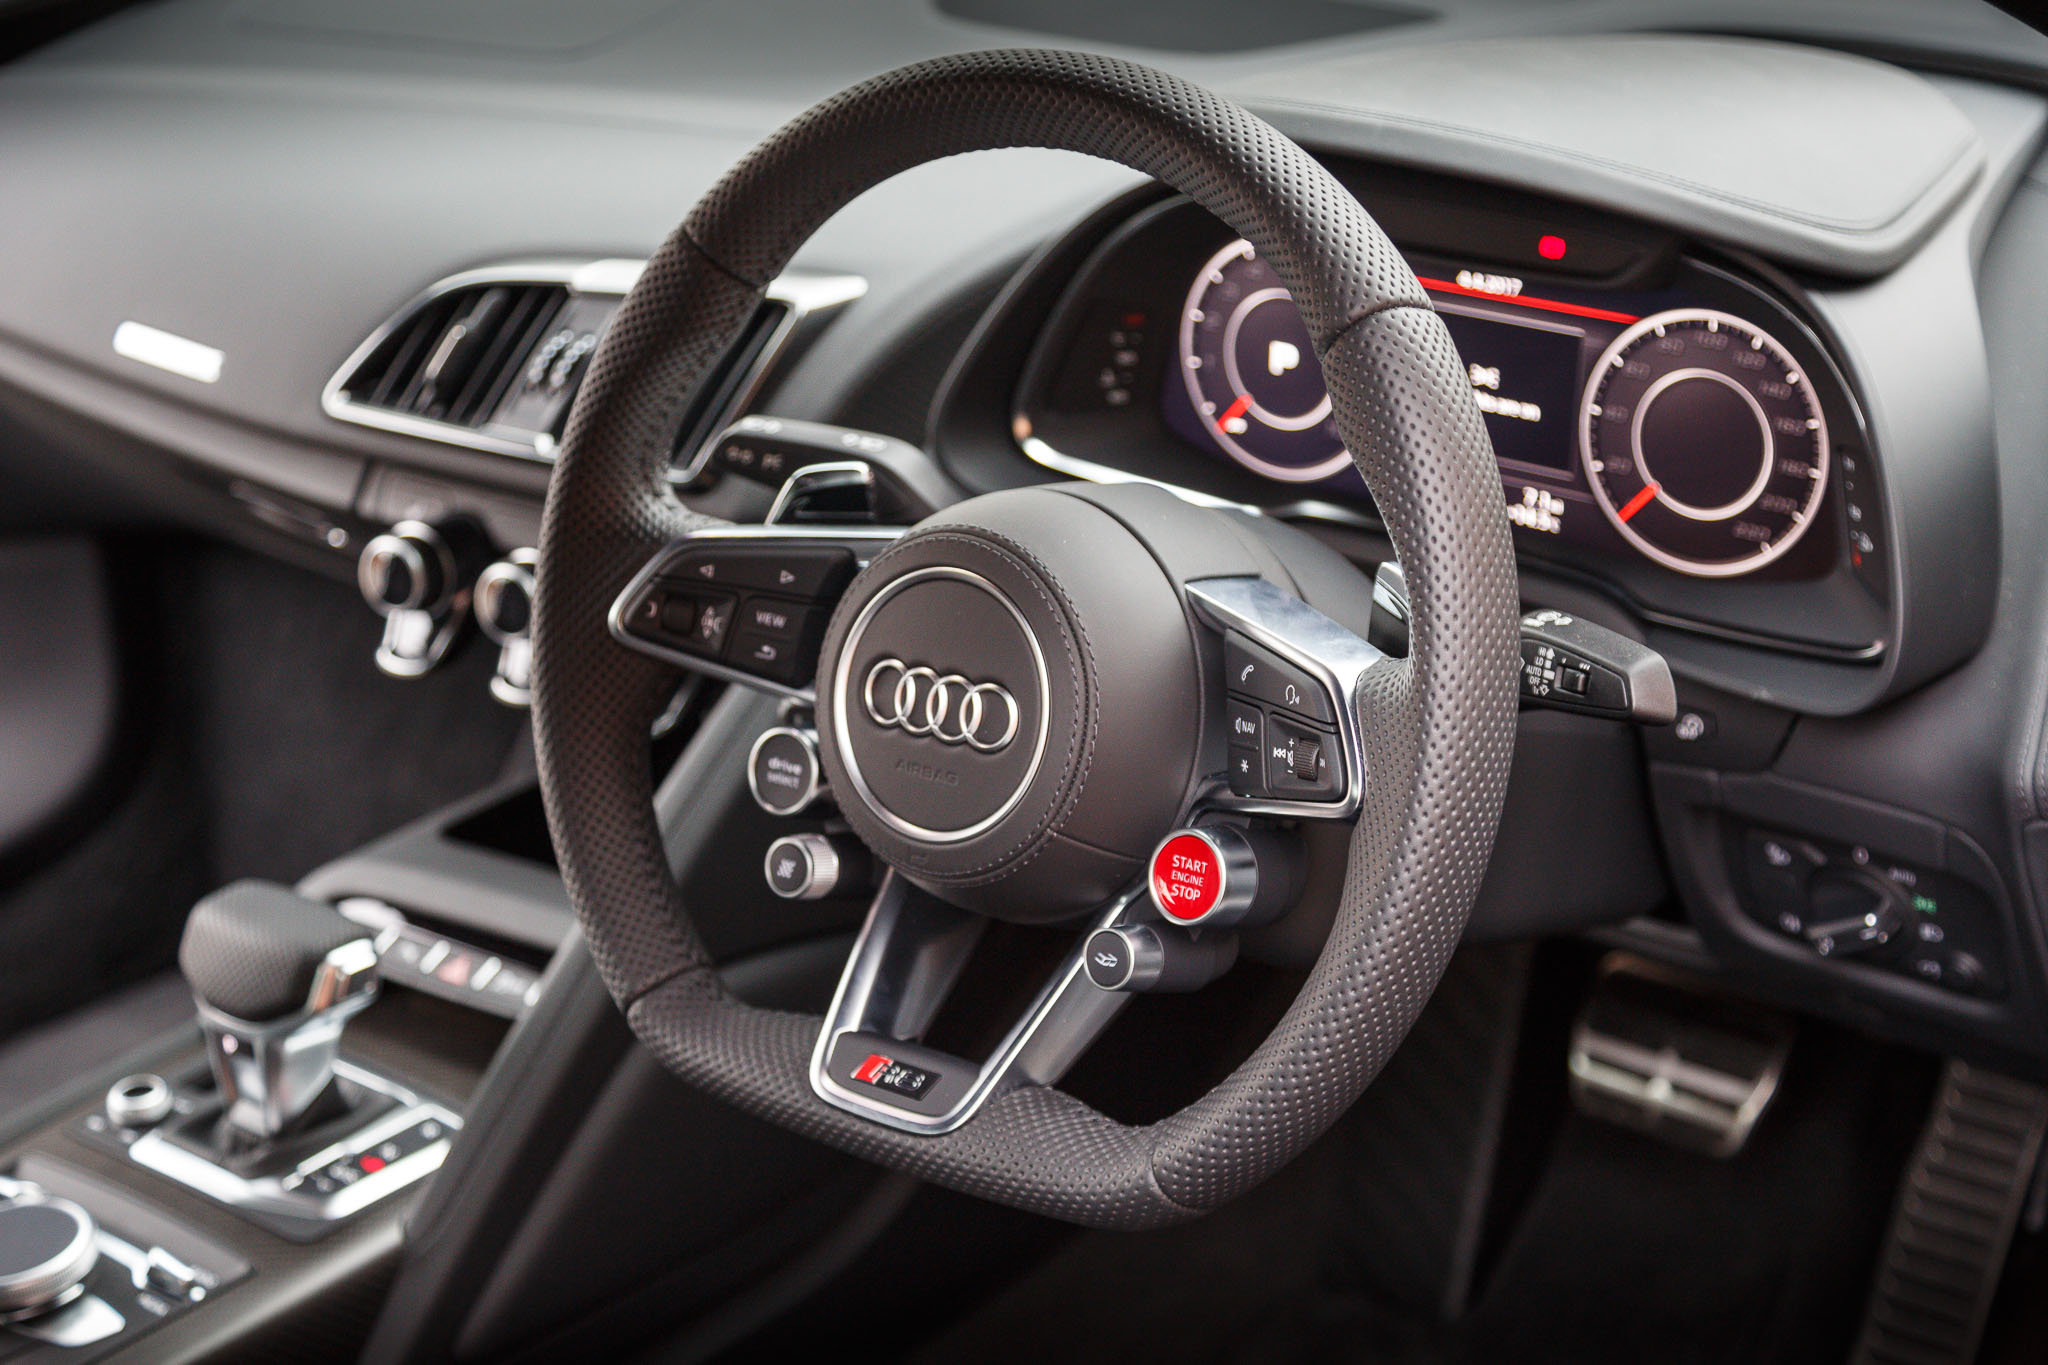 Audi Rs7 0 60 >> 2017 Audi R8 V10 Review - A Properly Fast, Everyday Supercar